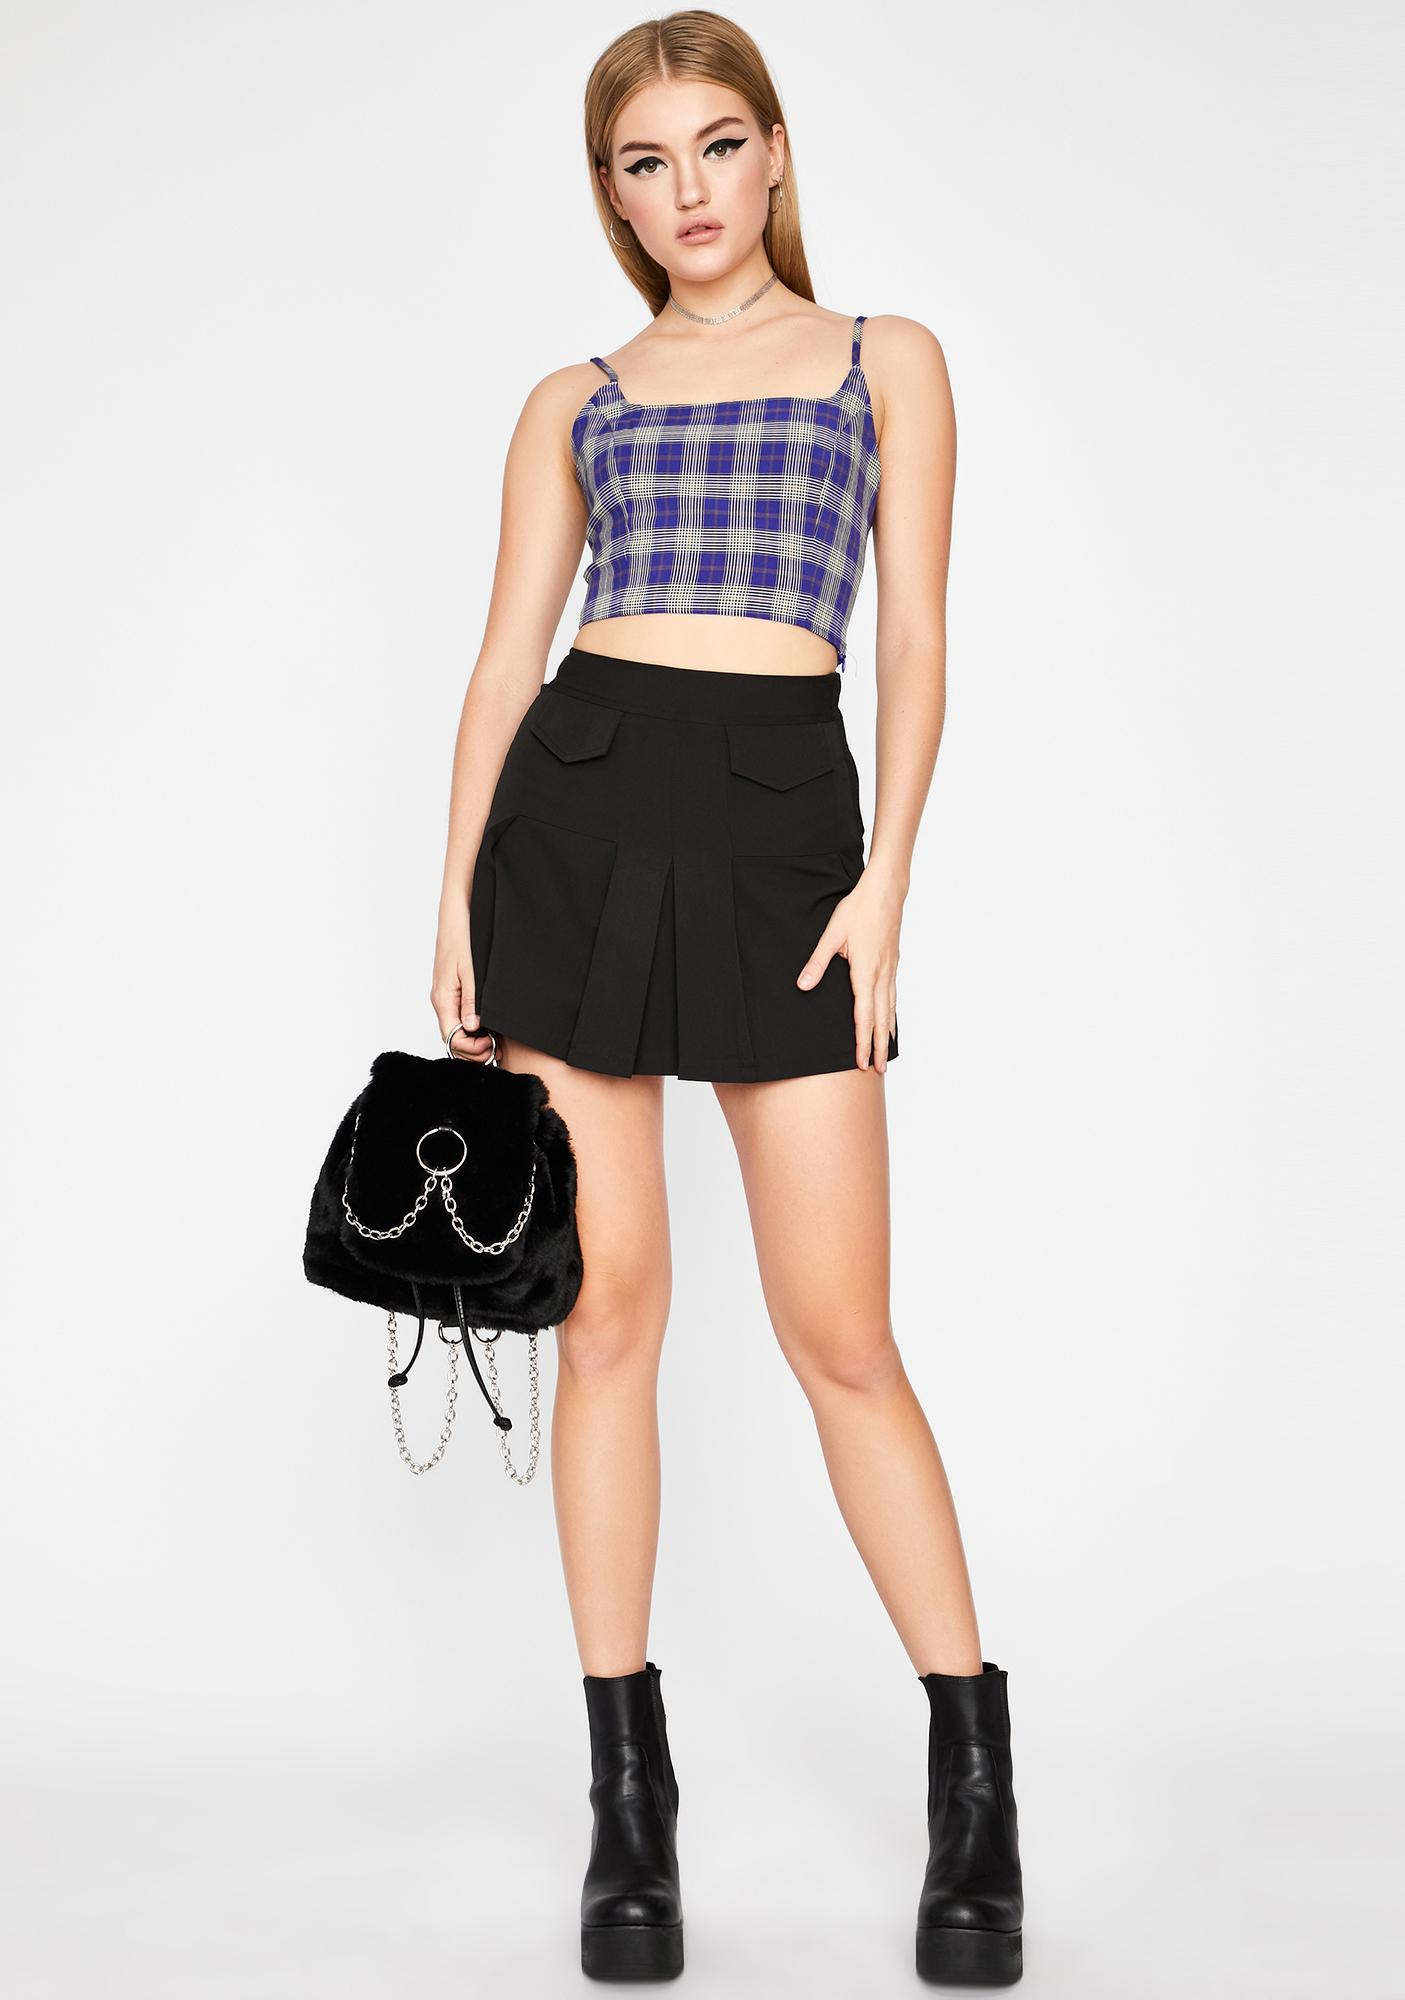 Chill Get A Clue Plaid Top